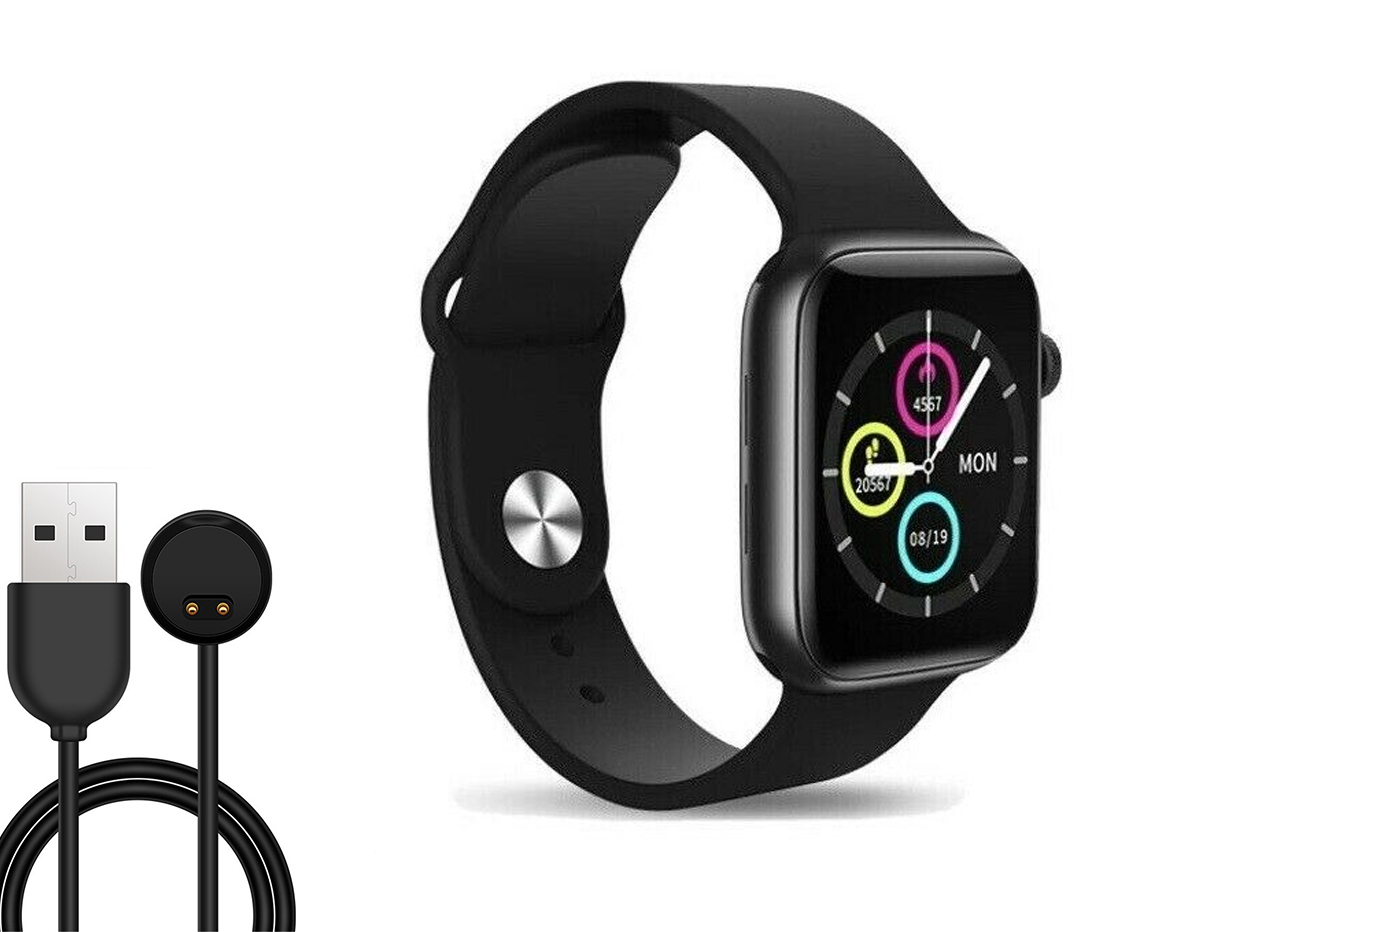 Smartwatch bluetooth ricarica wireless magnetico sonno contapassi notifiche